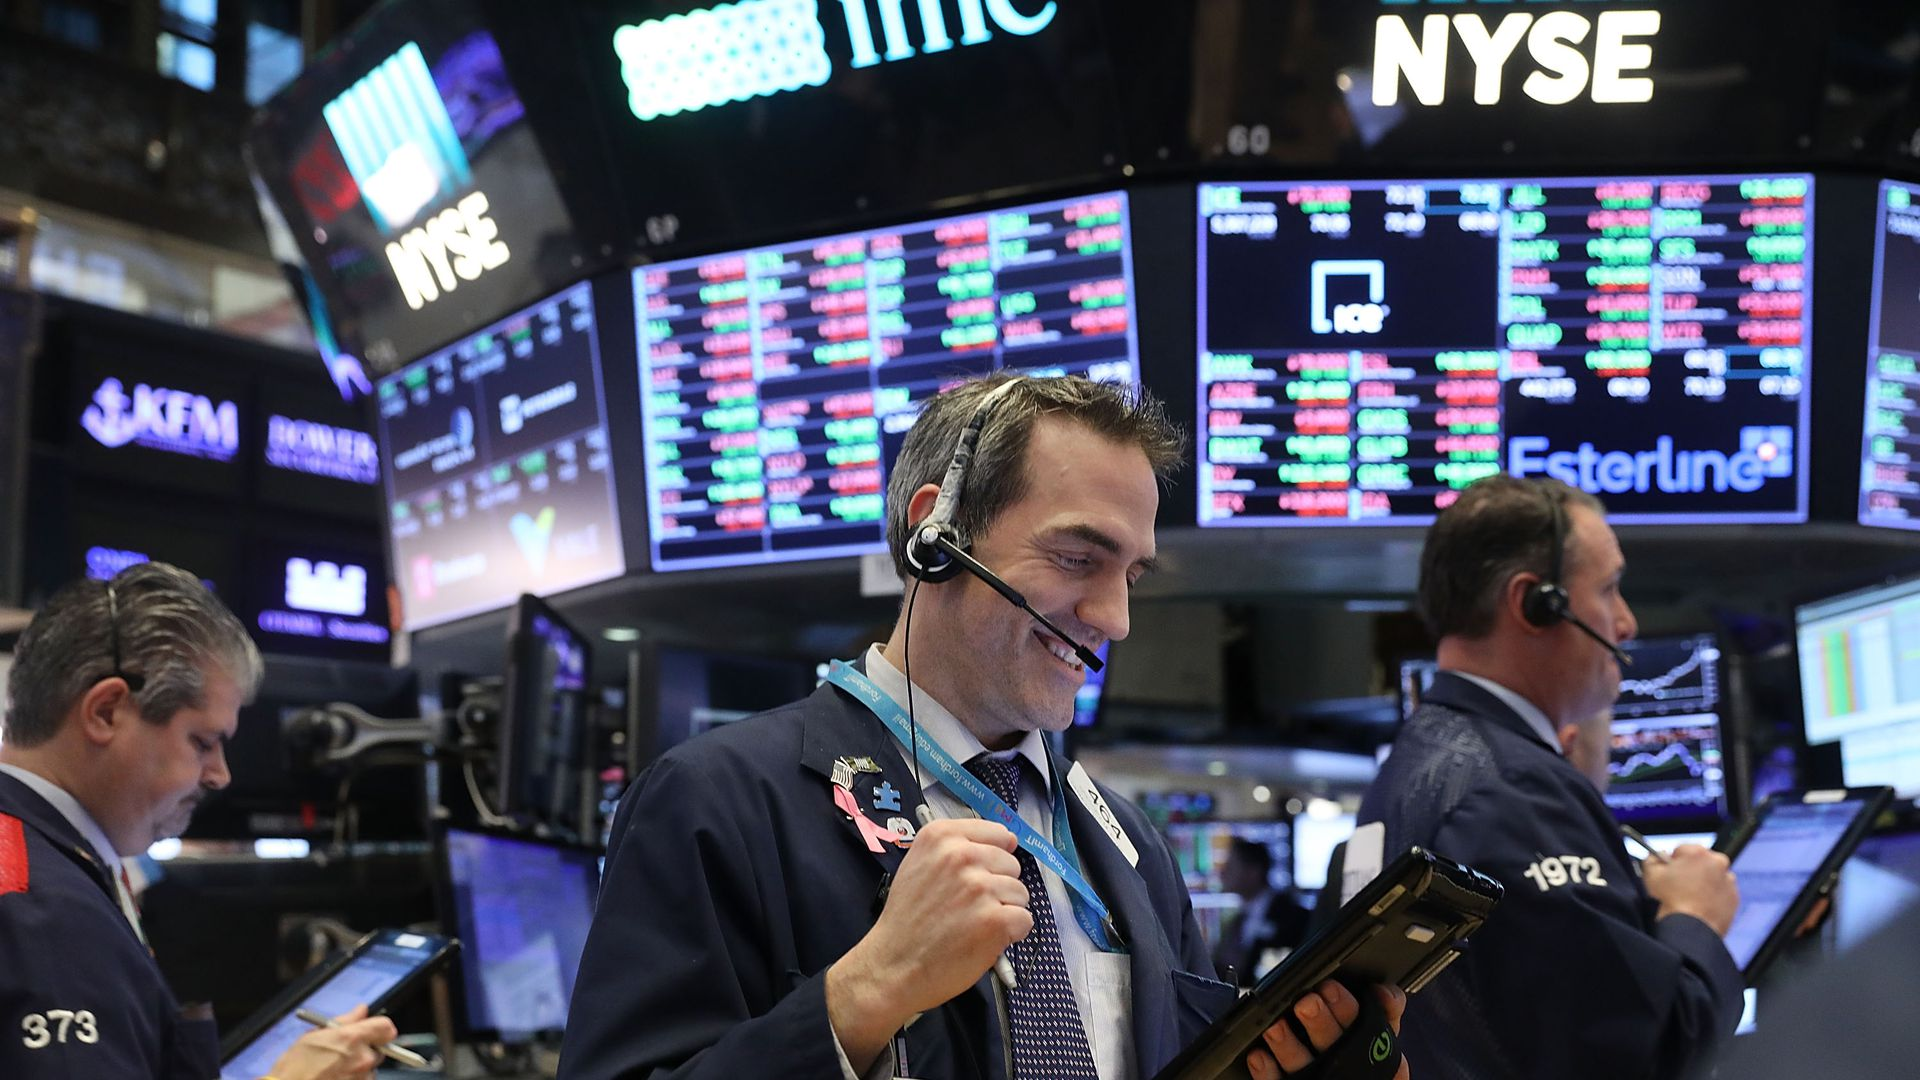 An excited trader on the floor of the stock exchange.